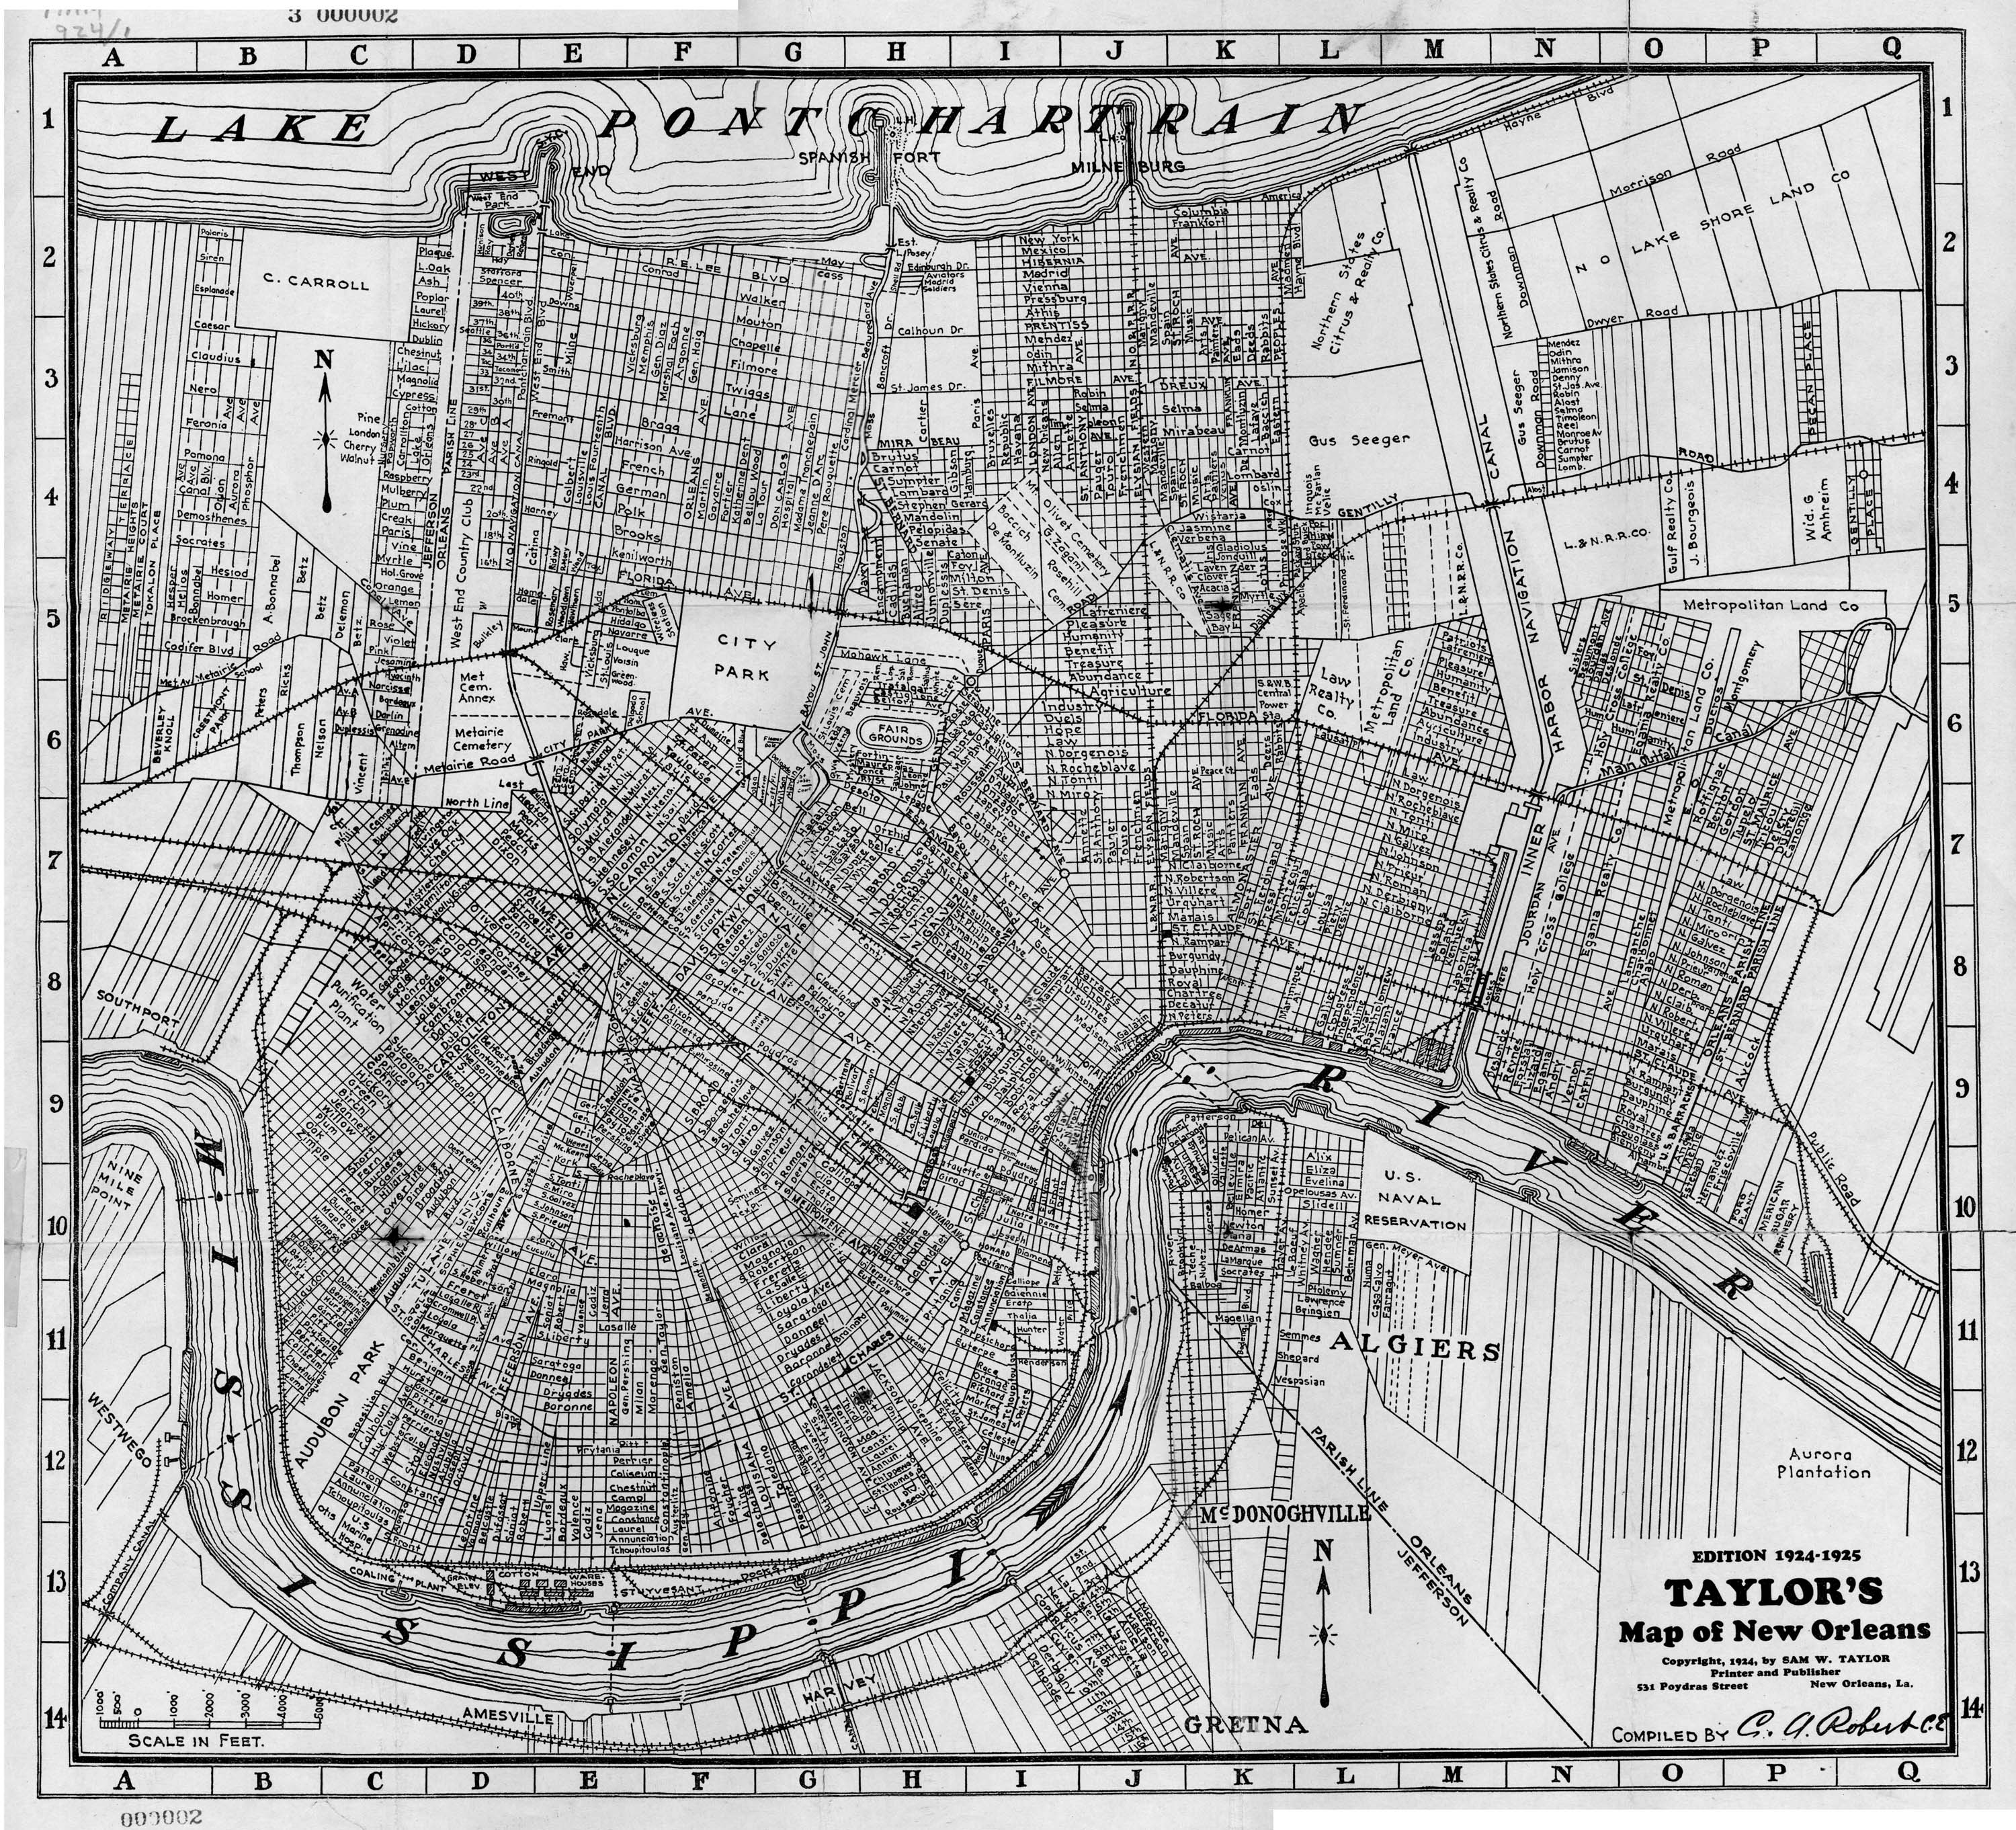 Louisiana New Orleans Map.Nopl Louisiana Map Collection